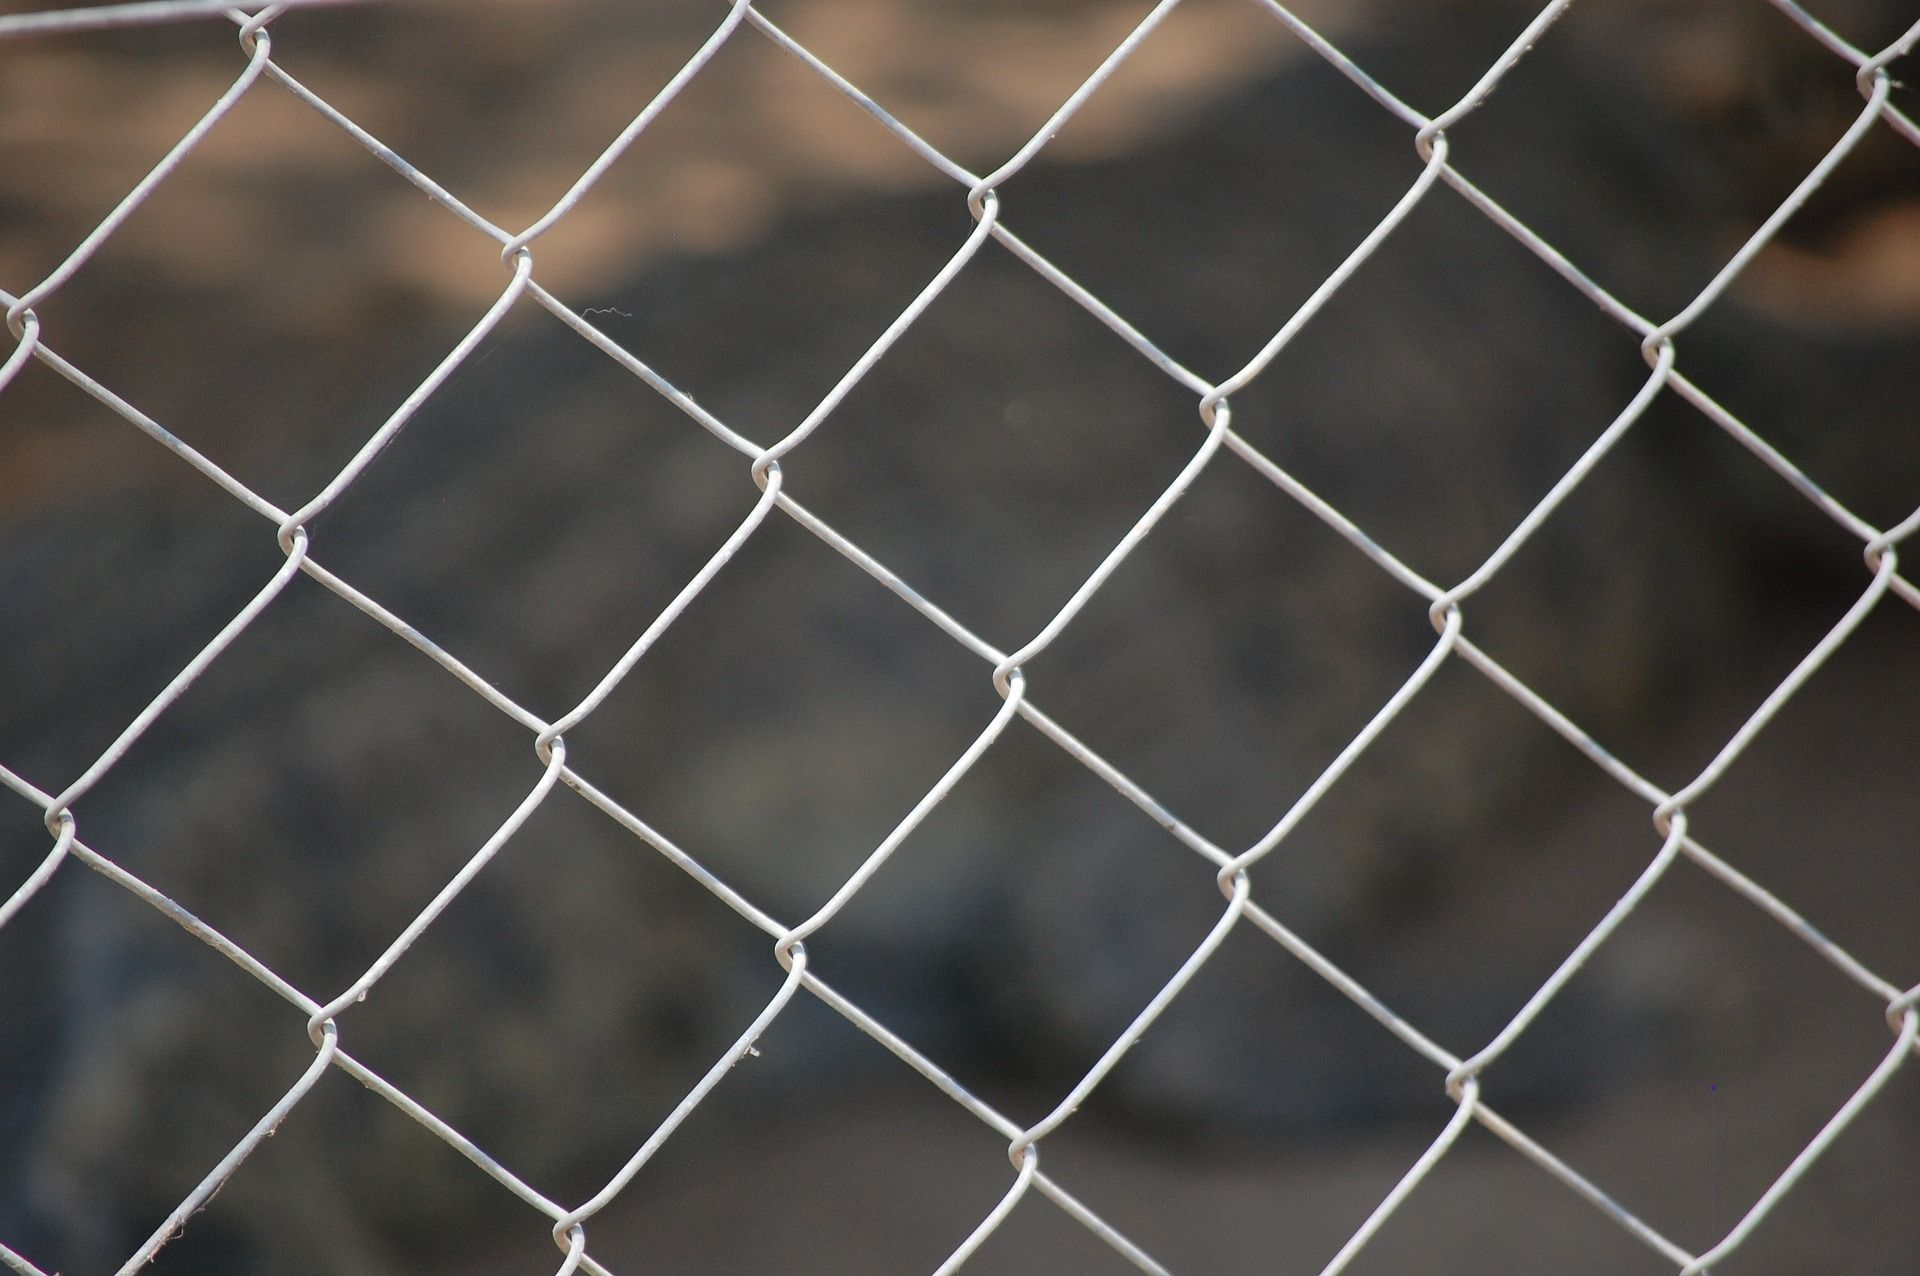 You can consider chain link fence installation to improve the